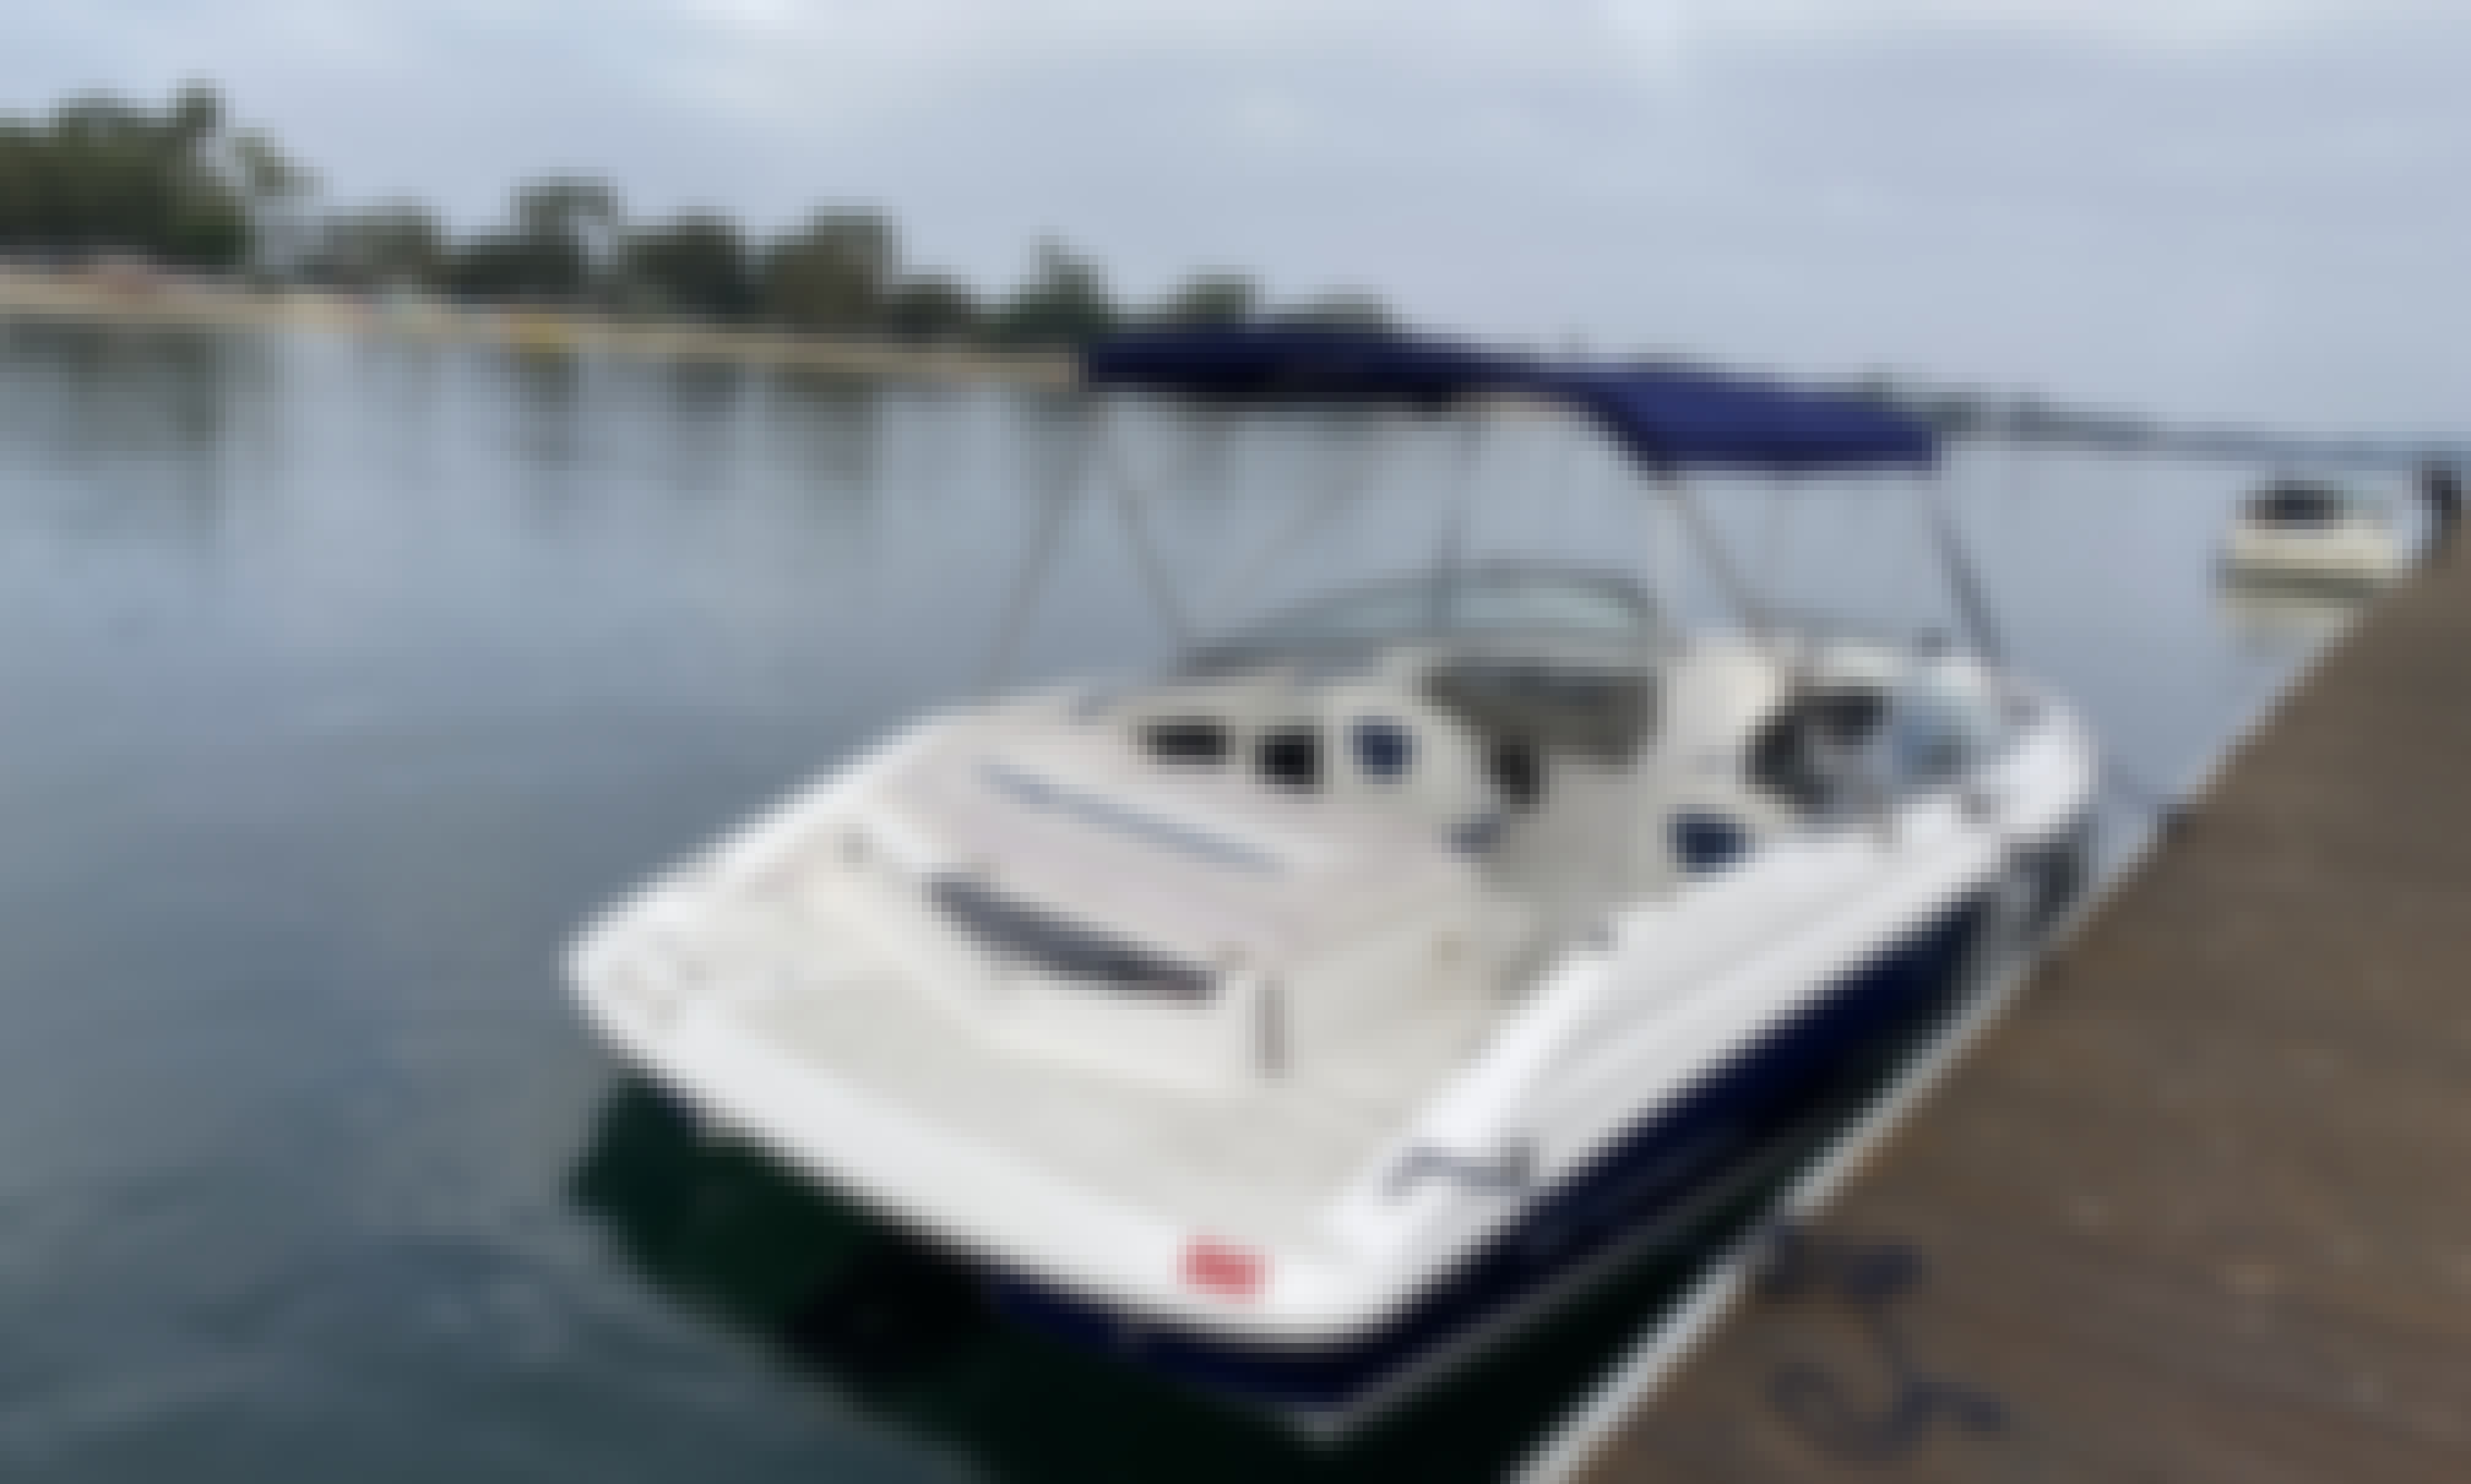 Regal Bowrider Boat for Wakeboarding, Tubing, Fishing, Or Cruising in Castaic, CA! (no fuel charge)